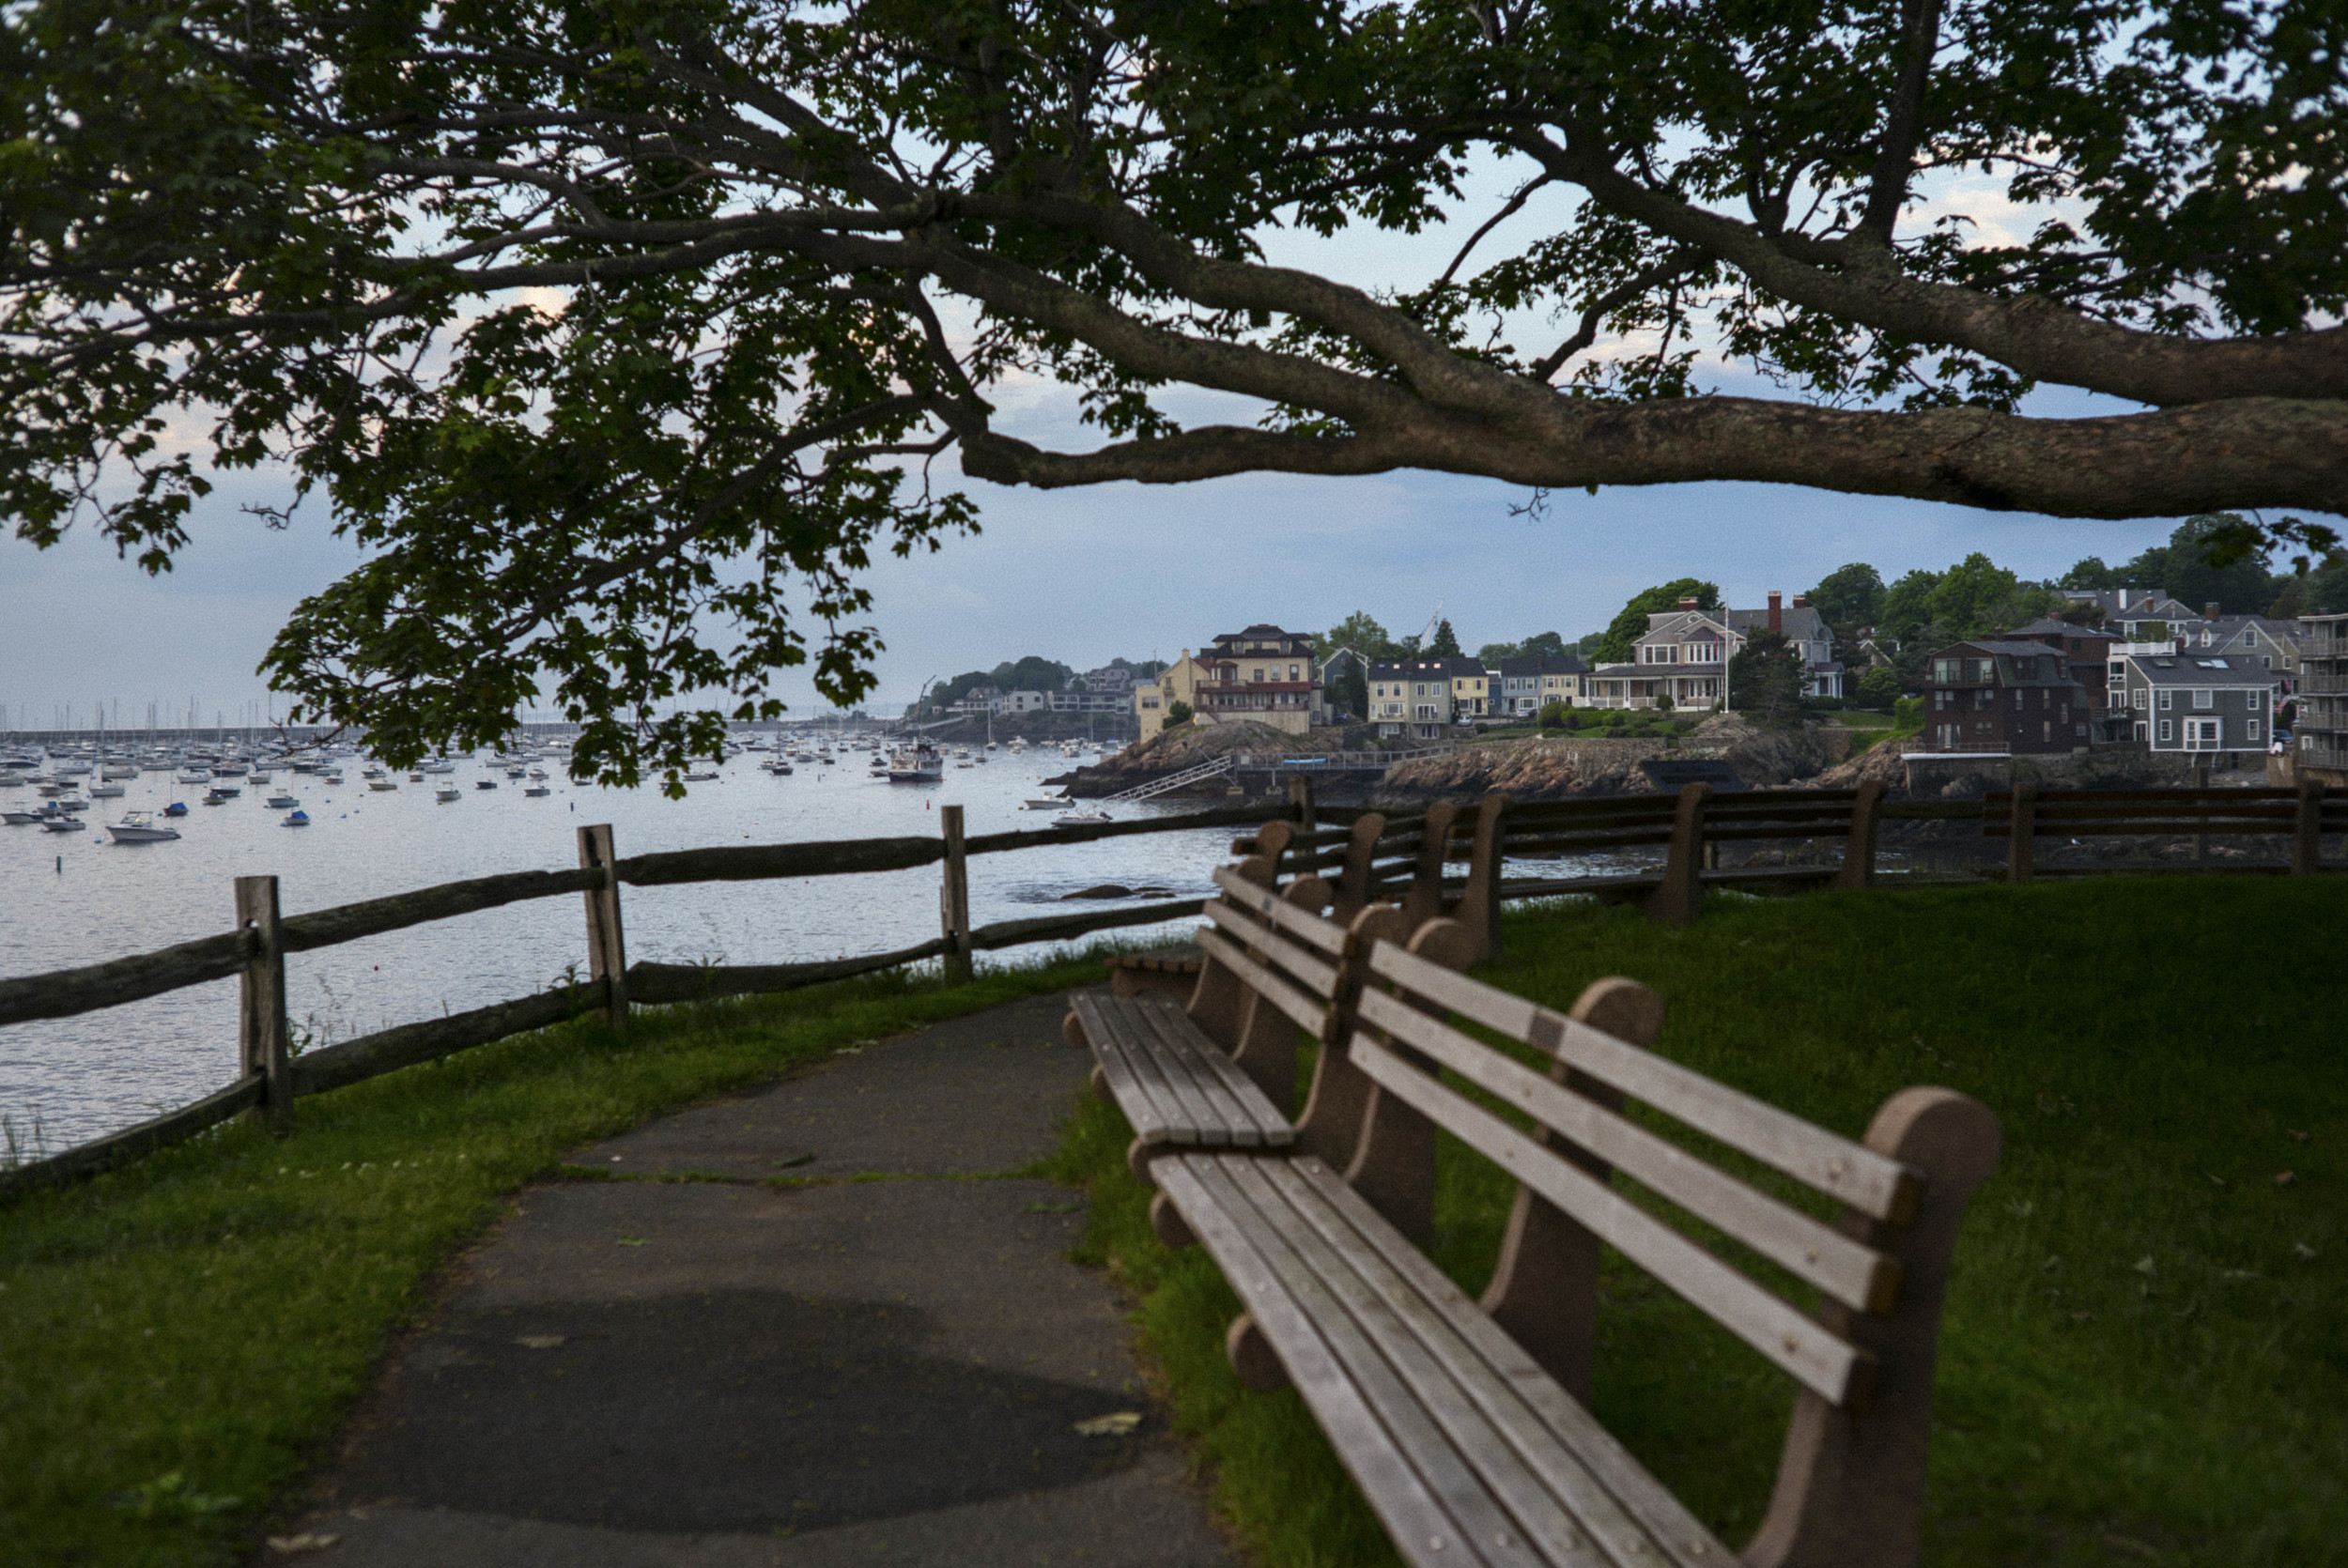 Fort Sewall, Marblehead, Massachusetts  Leica M, 35mm Summicron, f/3.4, 1/500s. ISO 400